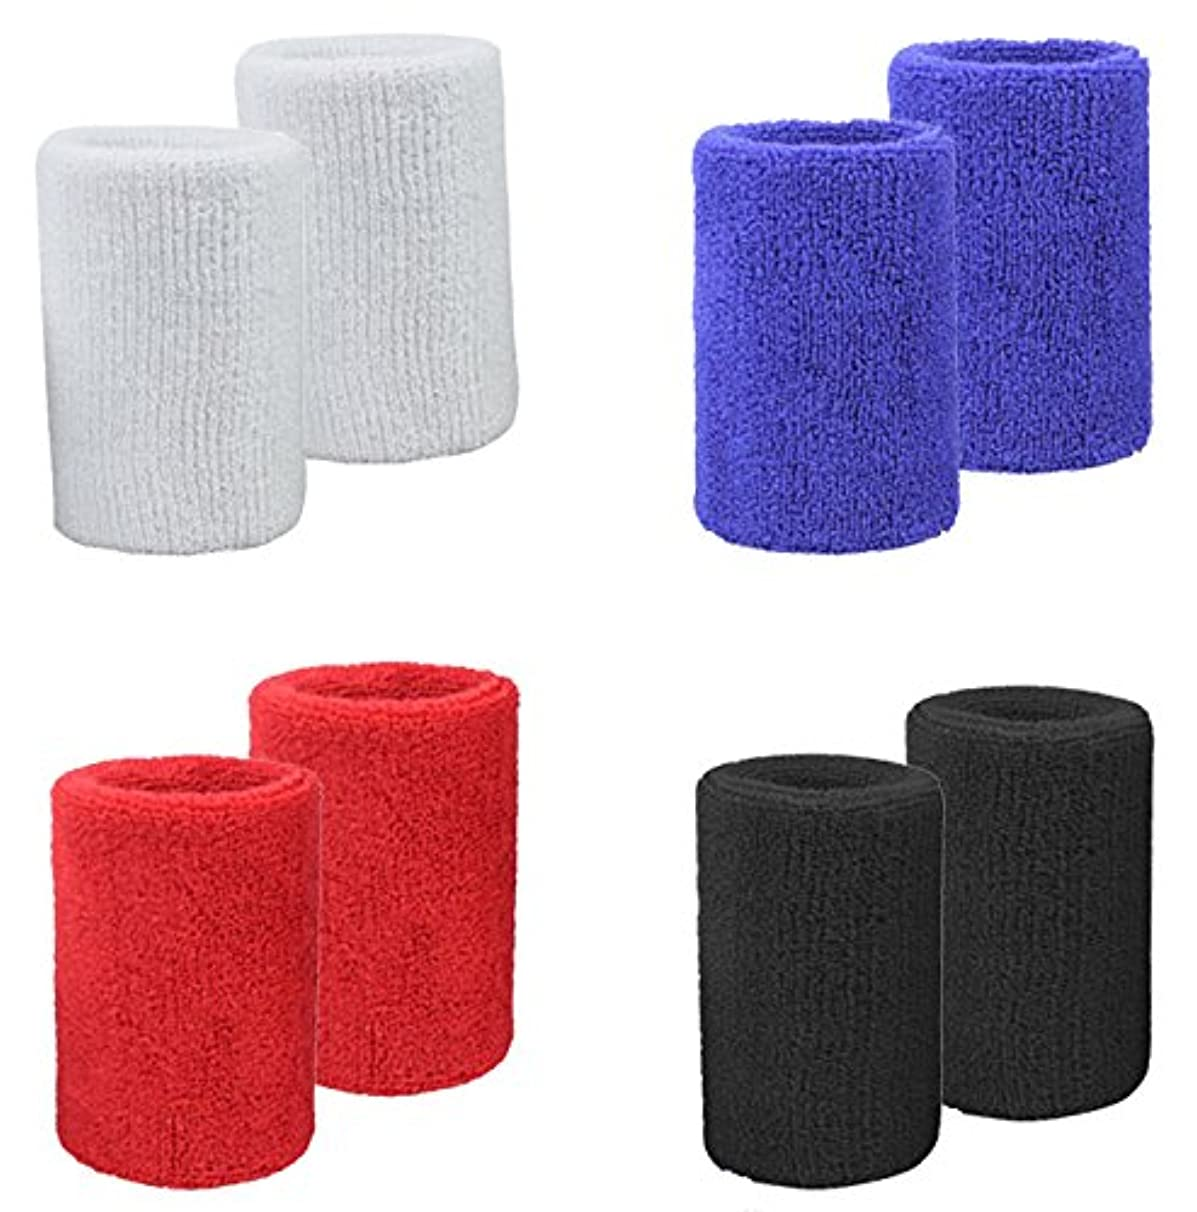 MAKLULU Sports & Outdoors Double Sweat Wristbands 2 Ply Thickness Terry Cloth Moisture Wicking